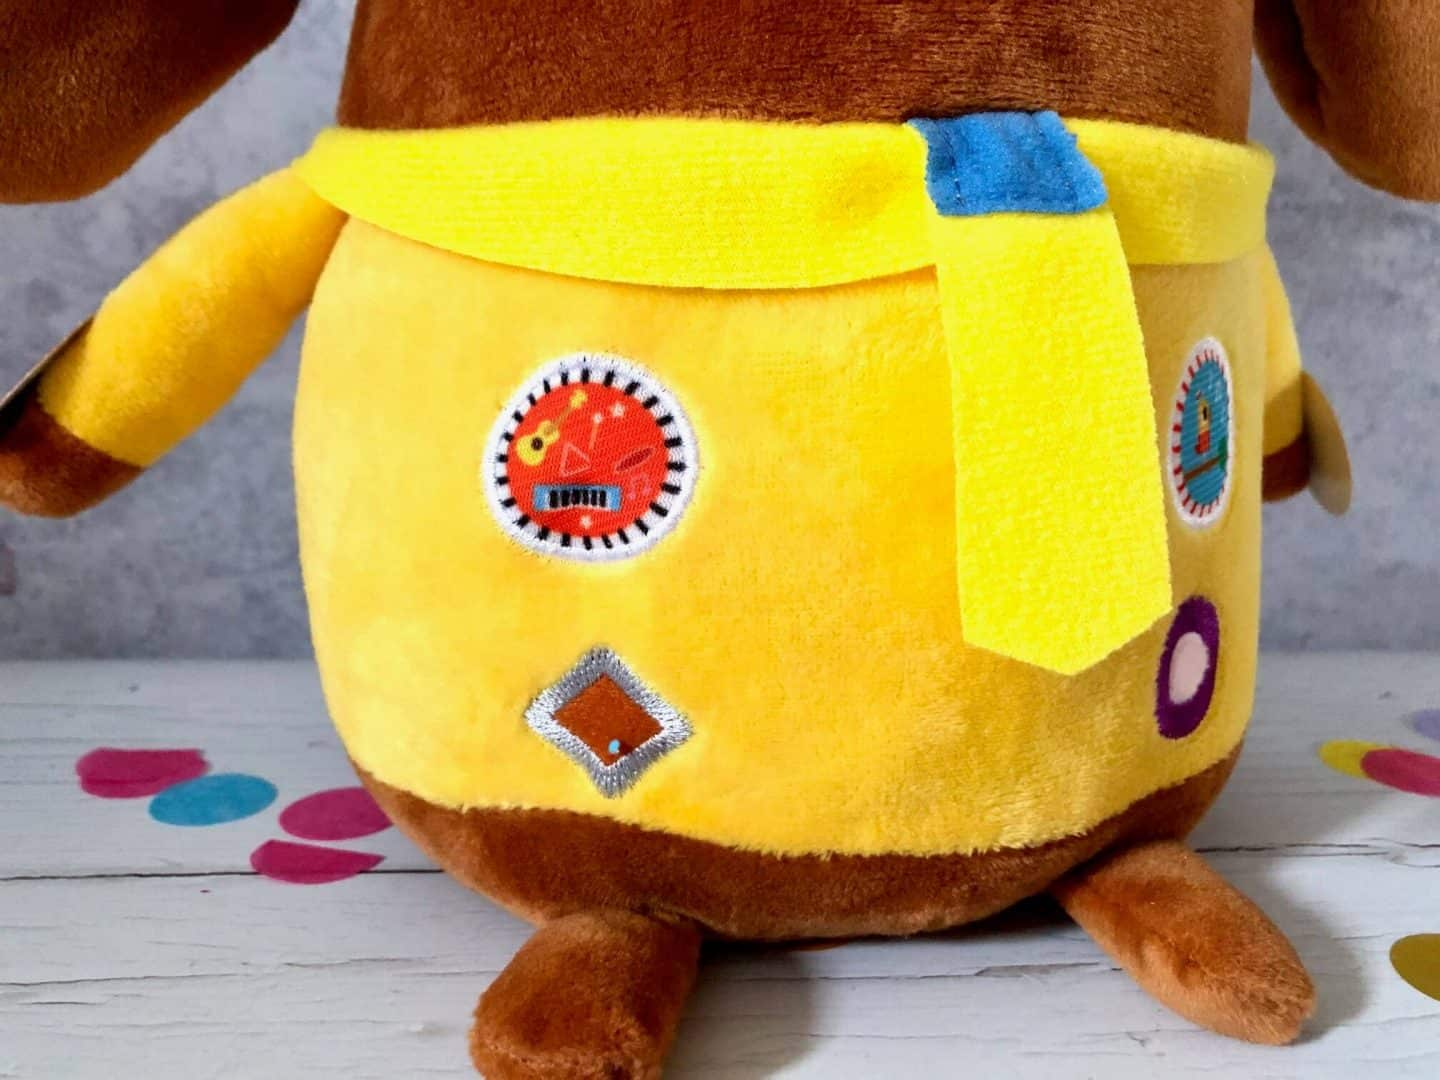 Stitching on Hey Duggee's badges